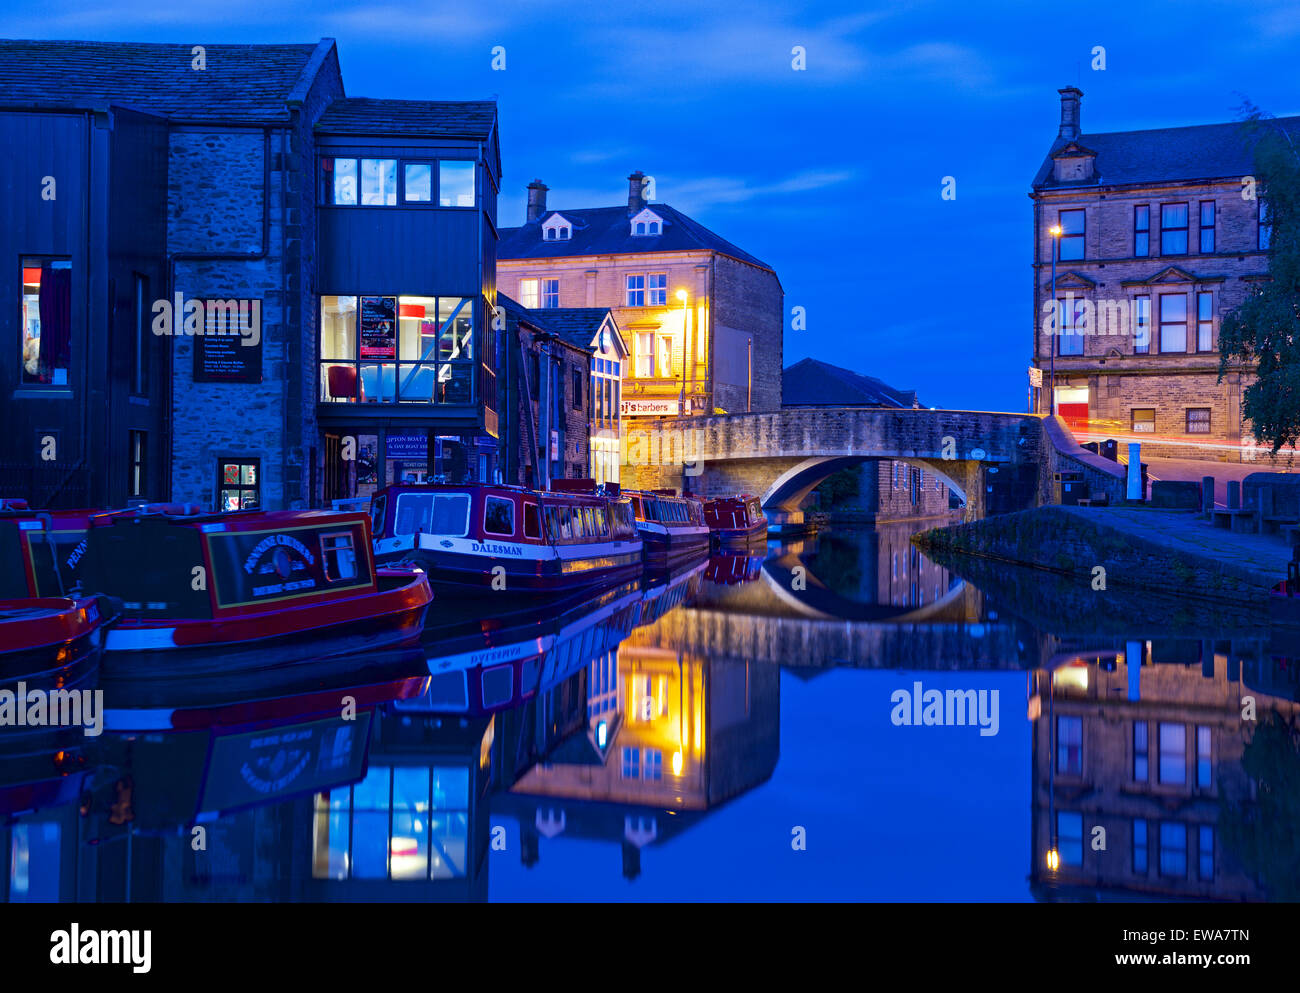 The Leeds and Liverpool Canal at night, Skipton, North Yorkshire, England UK - Stock Image